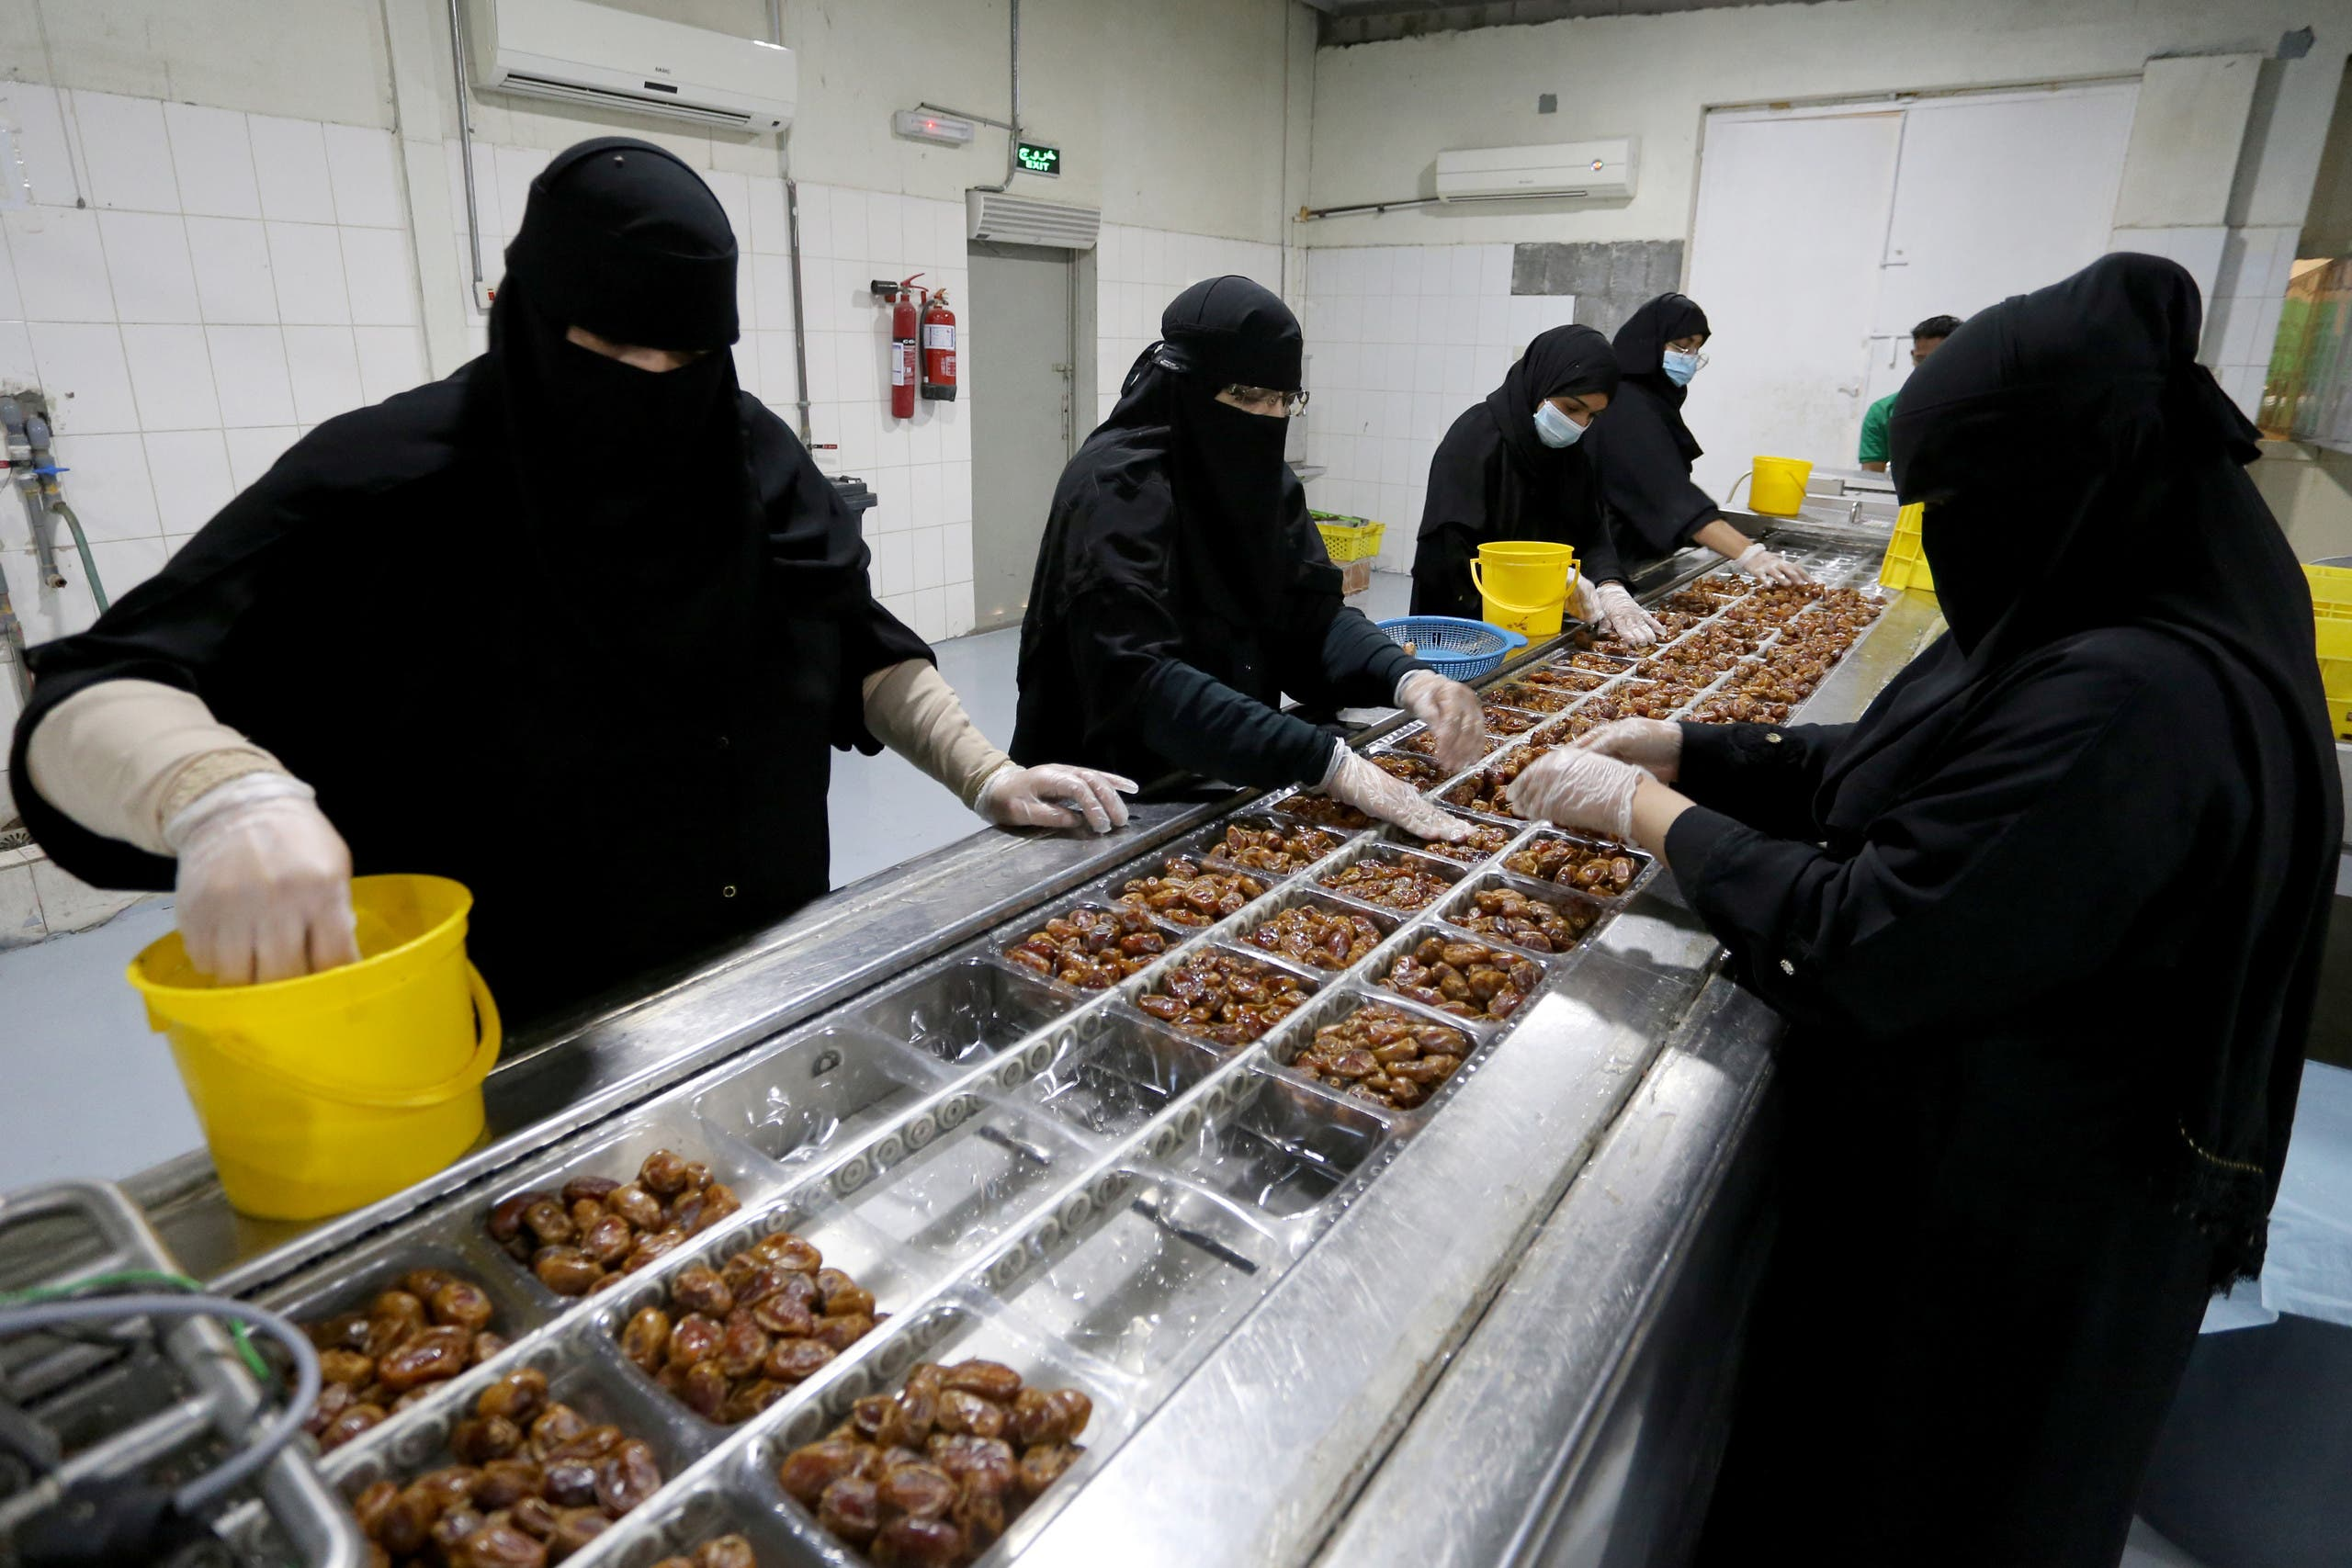 Saudi women work at a dates packaging factory in Al-Ahsa, Saudi Arabia. (Reuters)